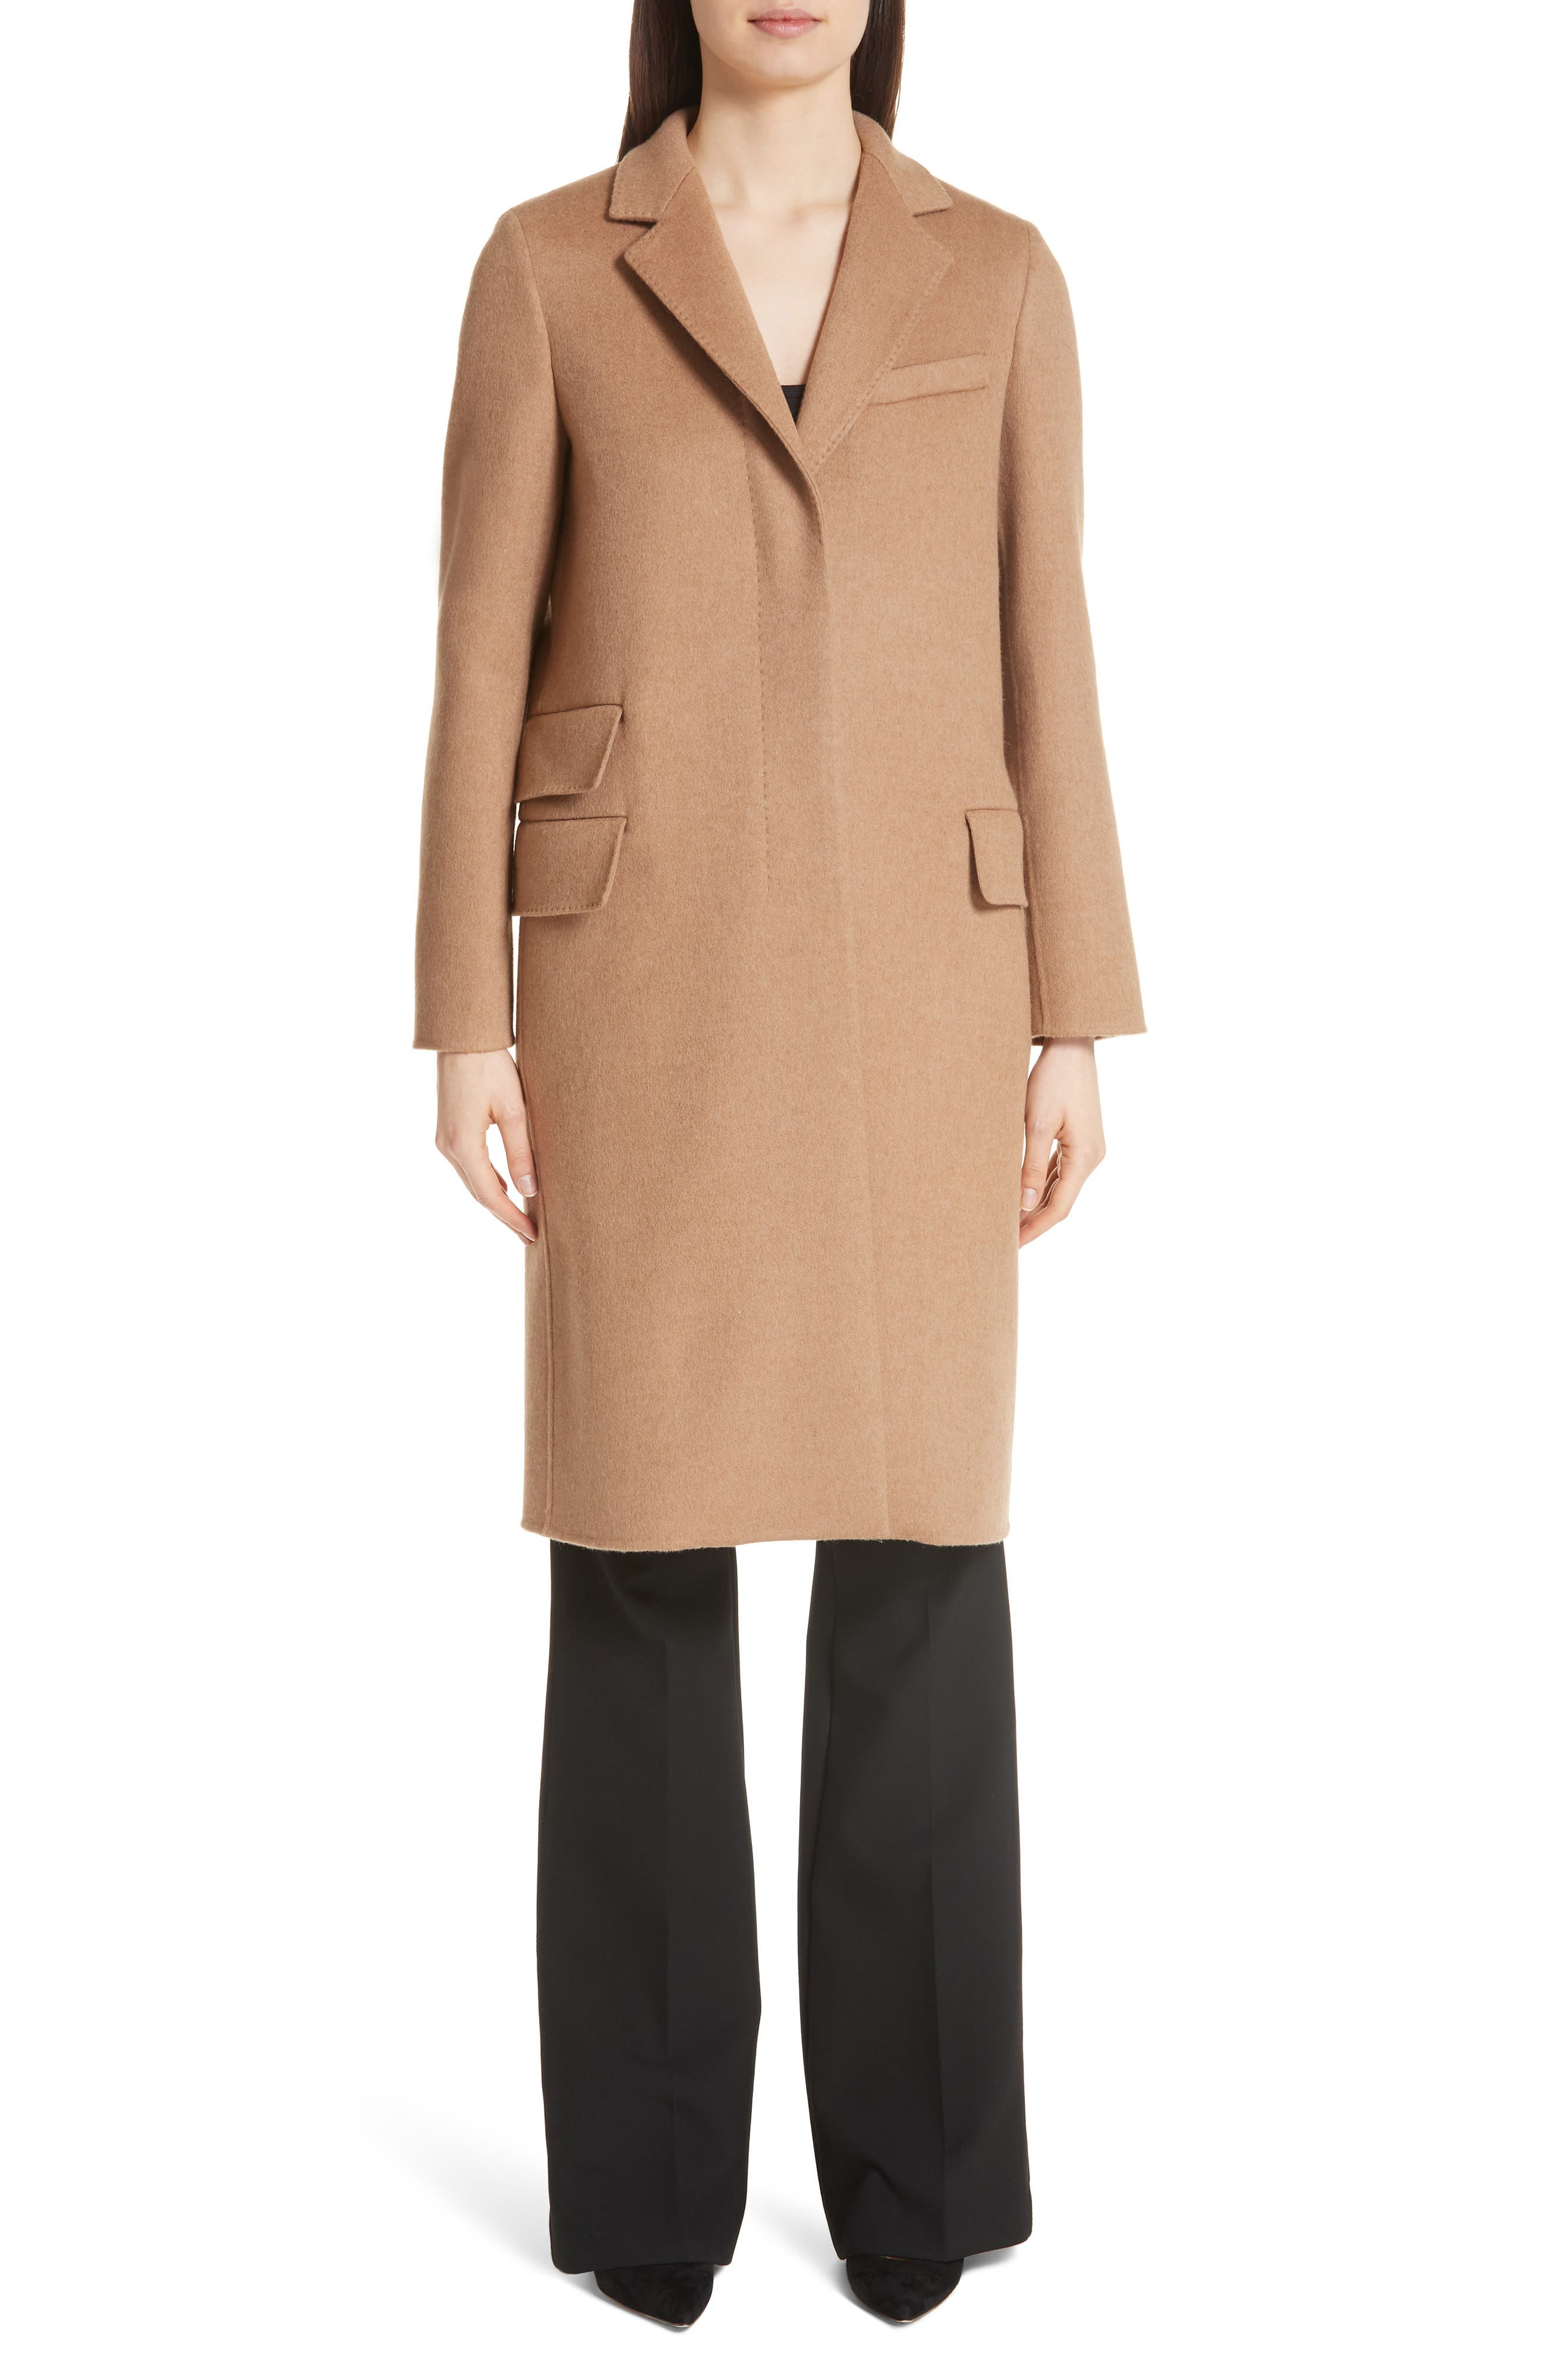 Aureo Camel Hair Coat,                         Main,                         color, 232